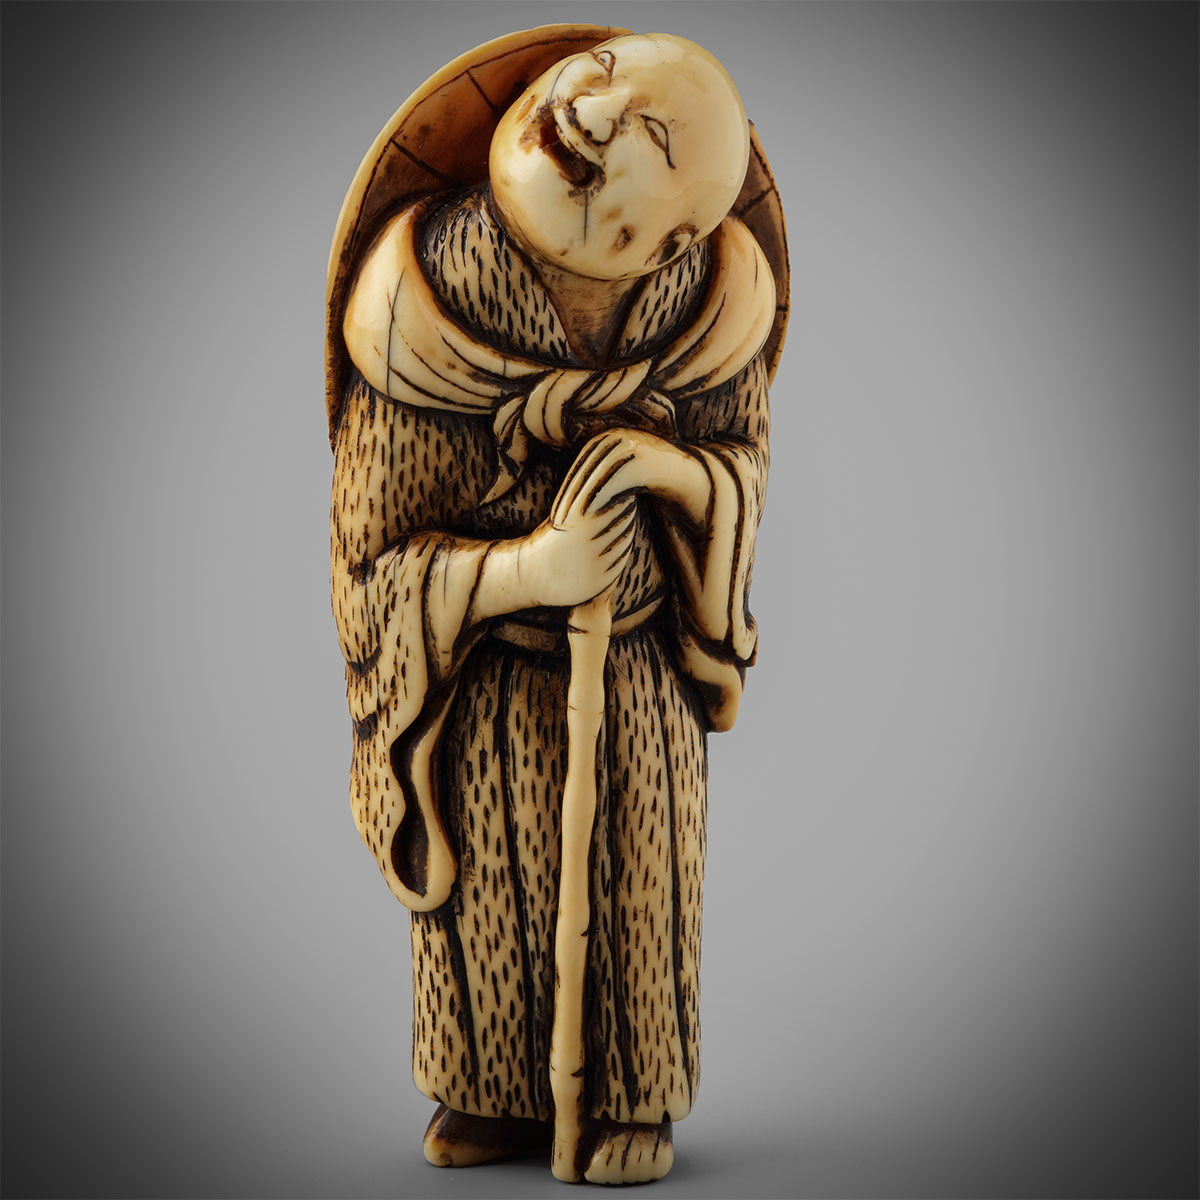 Stained Ivory Netsuke of an Itinerant Priest, MR3275_v1